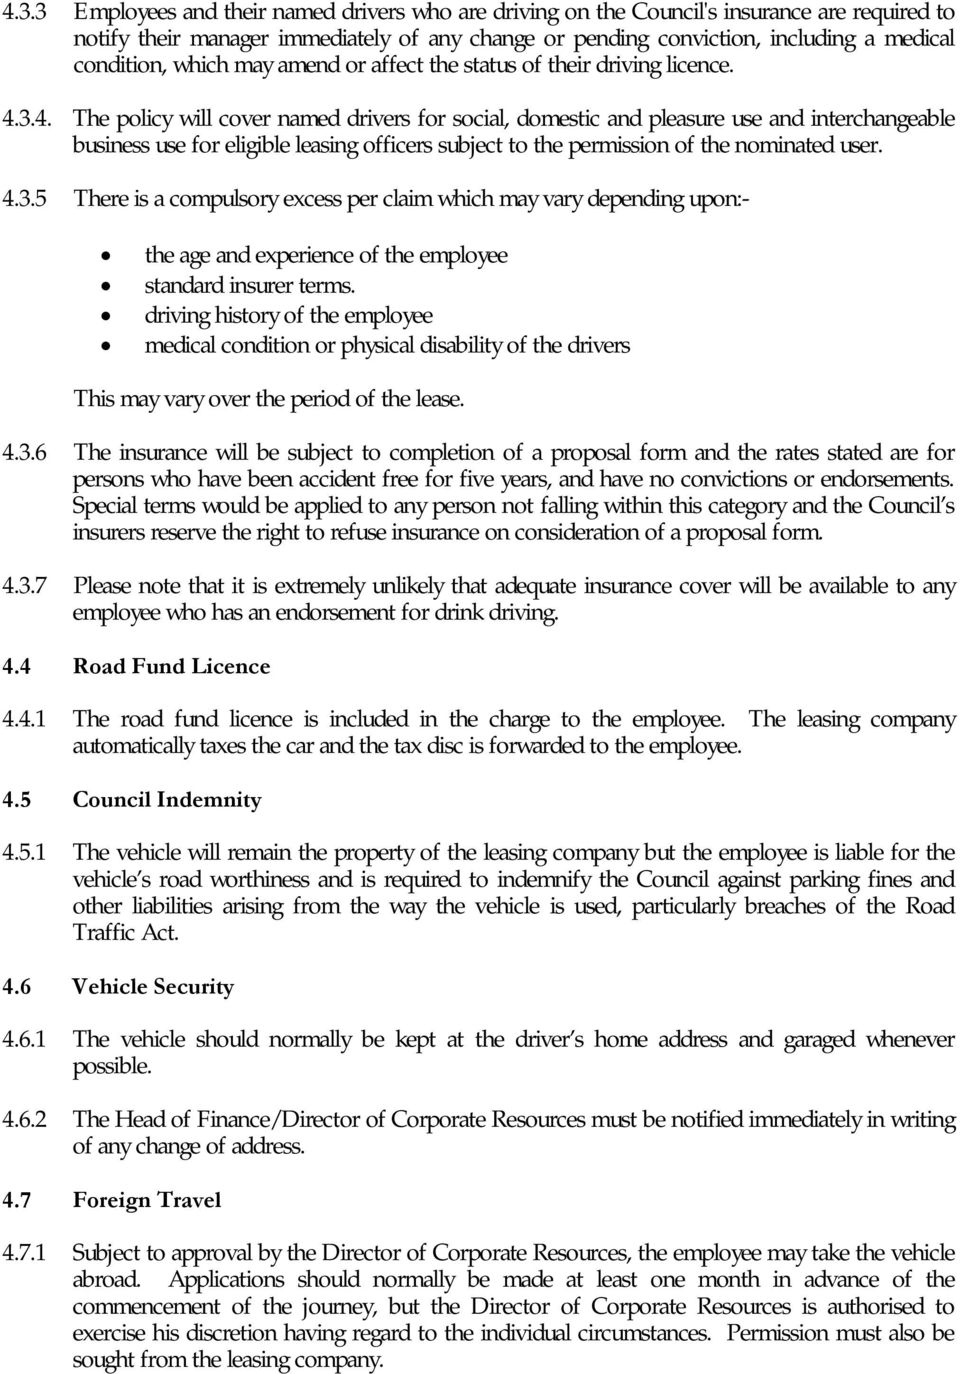 3.4. The policy will cover named drivers for social, domestic and pleasure use and interchangeable business use for eligible leasing officers subject to the permission of the nominated user. 4.3.5 There is a compulsory excess per claim which may vary depending upon:- the age and experience of the employee standard insurer terms.